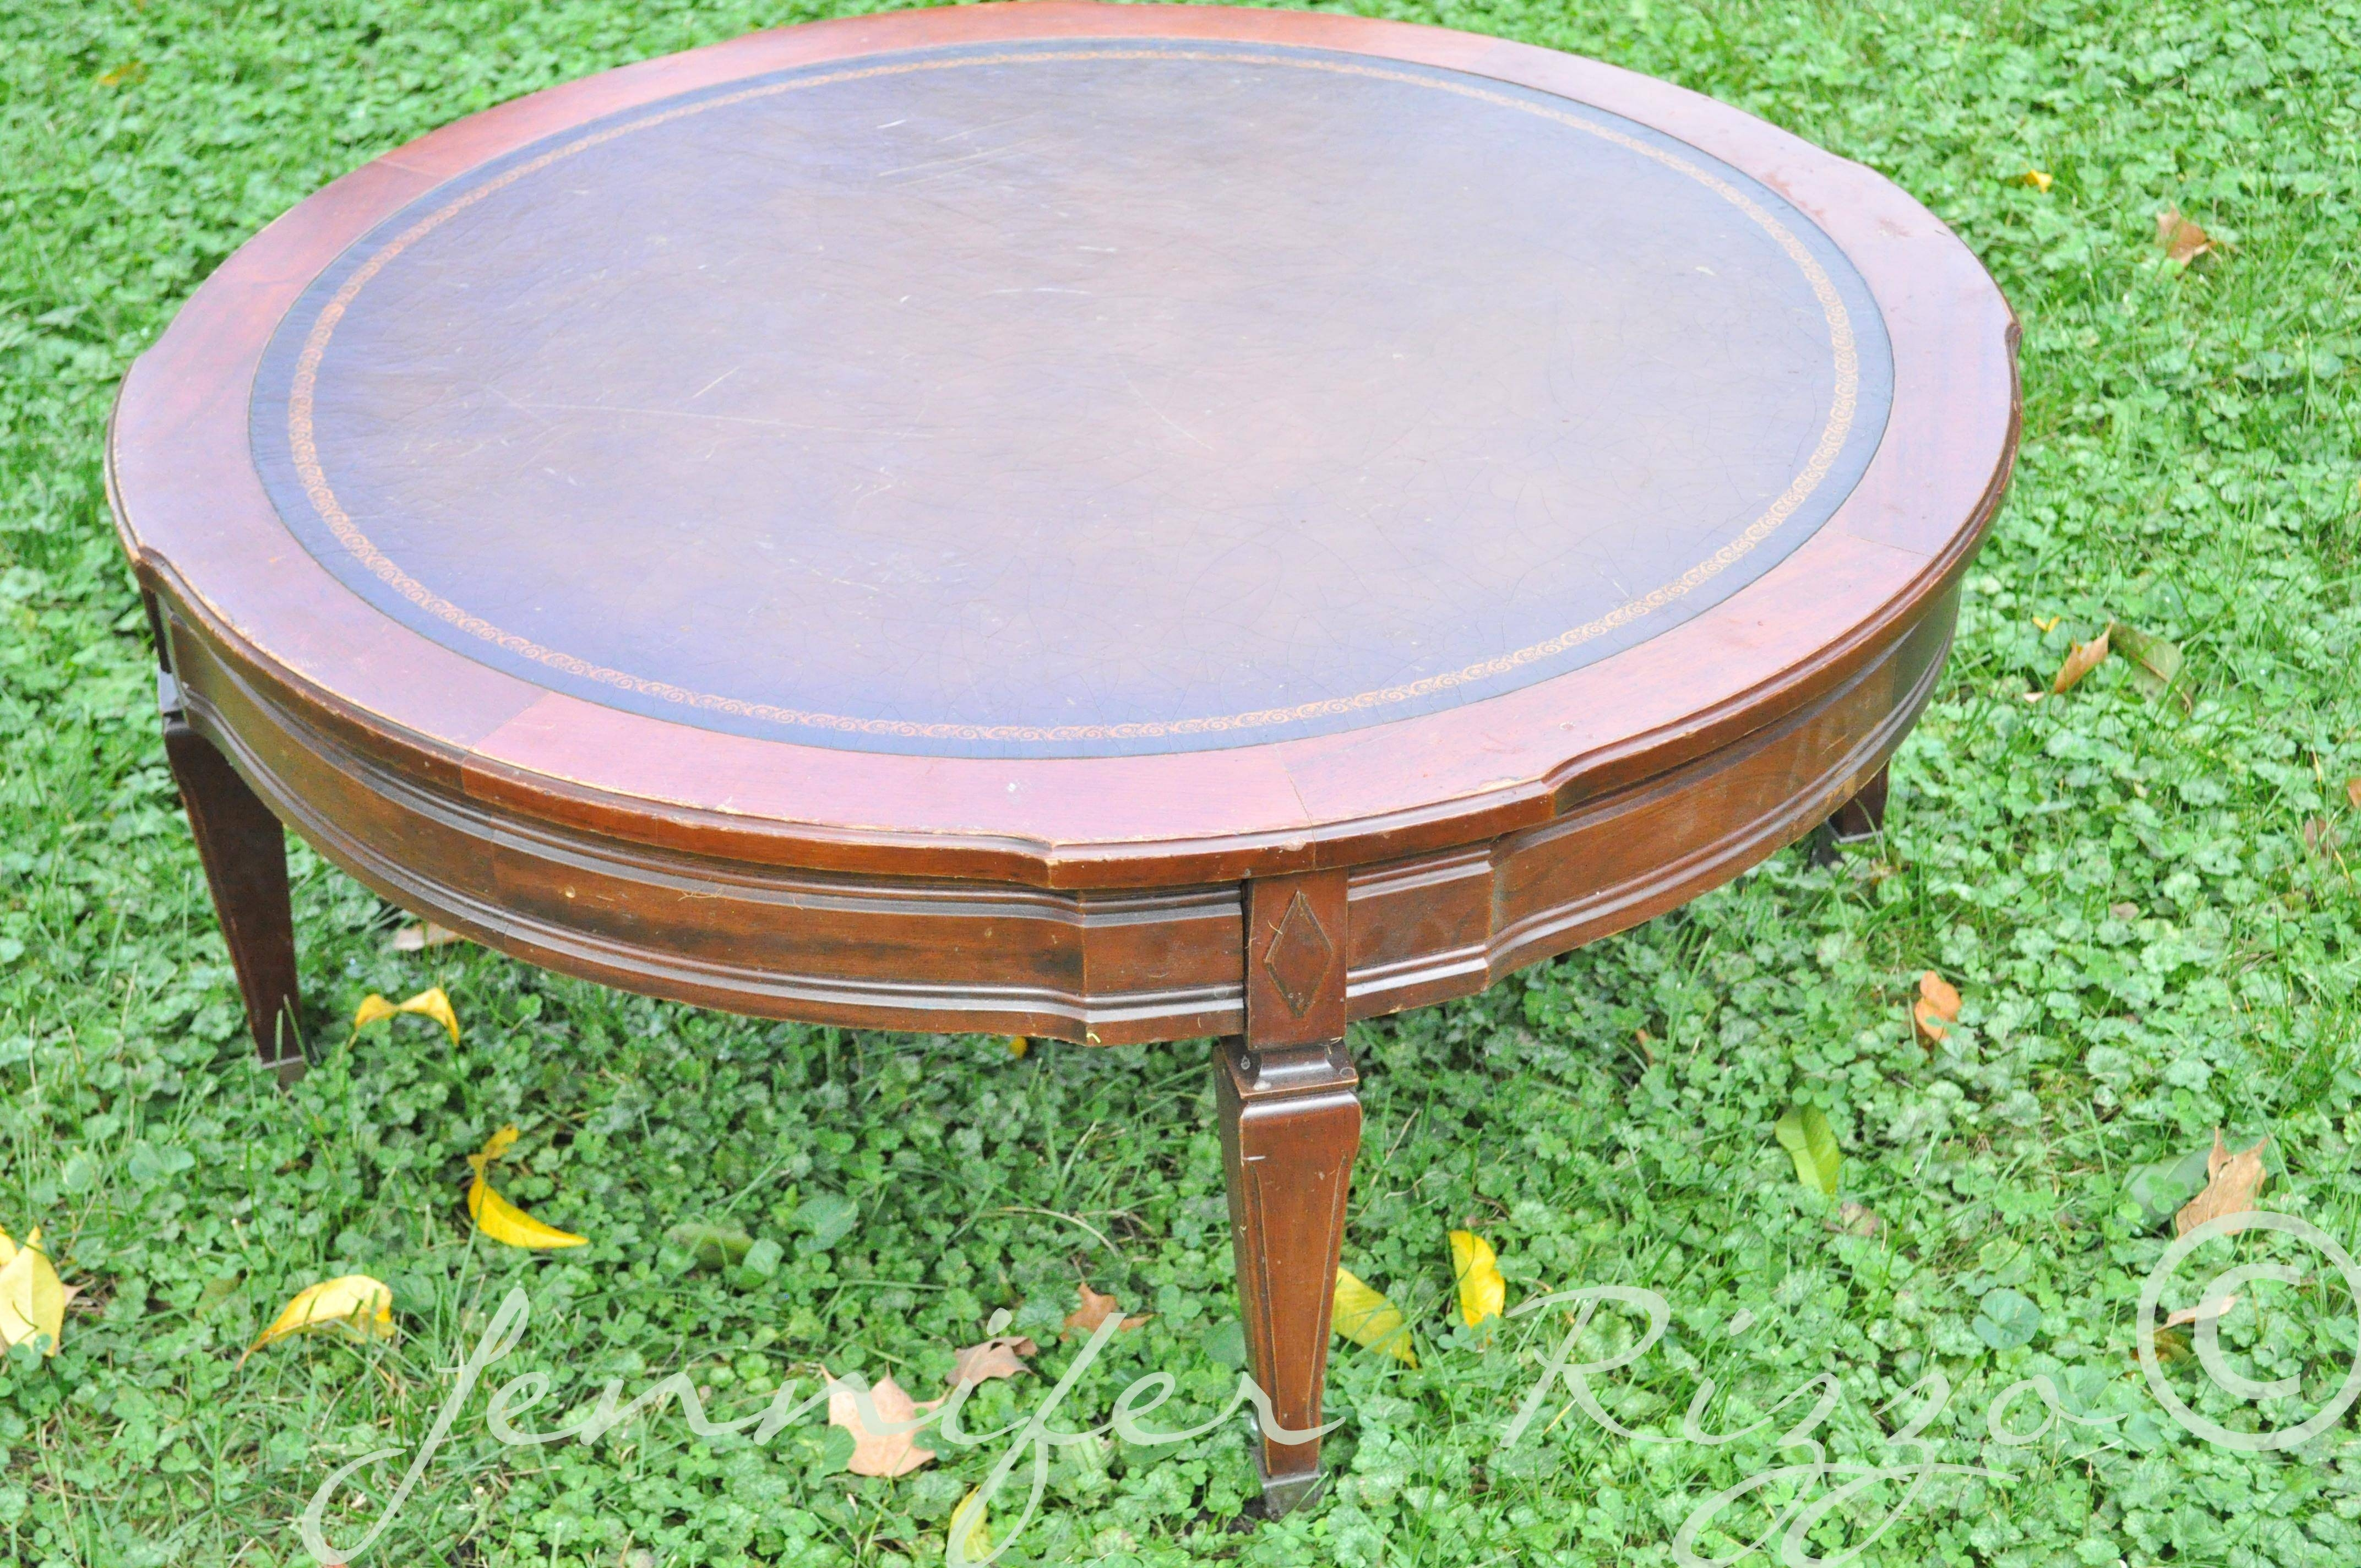 Turn A Vintage Coffee Table Into A Tufted,upholstered Ottoman throughout Round Upholstered Coffee Tables (Image 27 of 30)